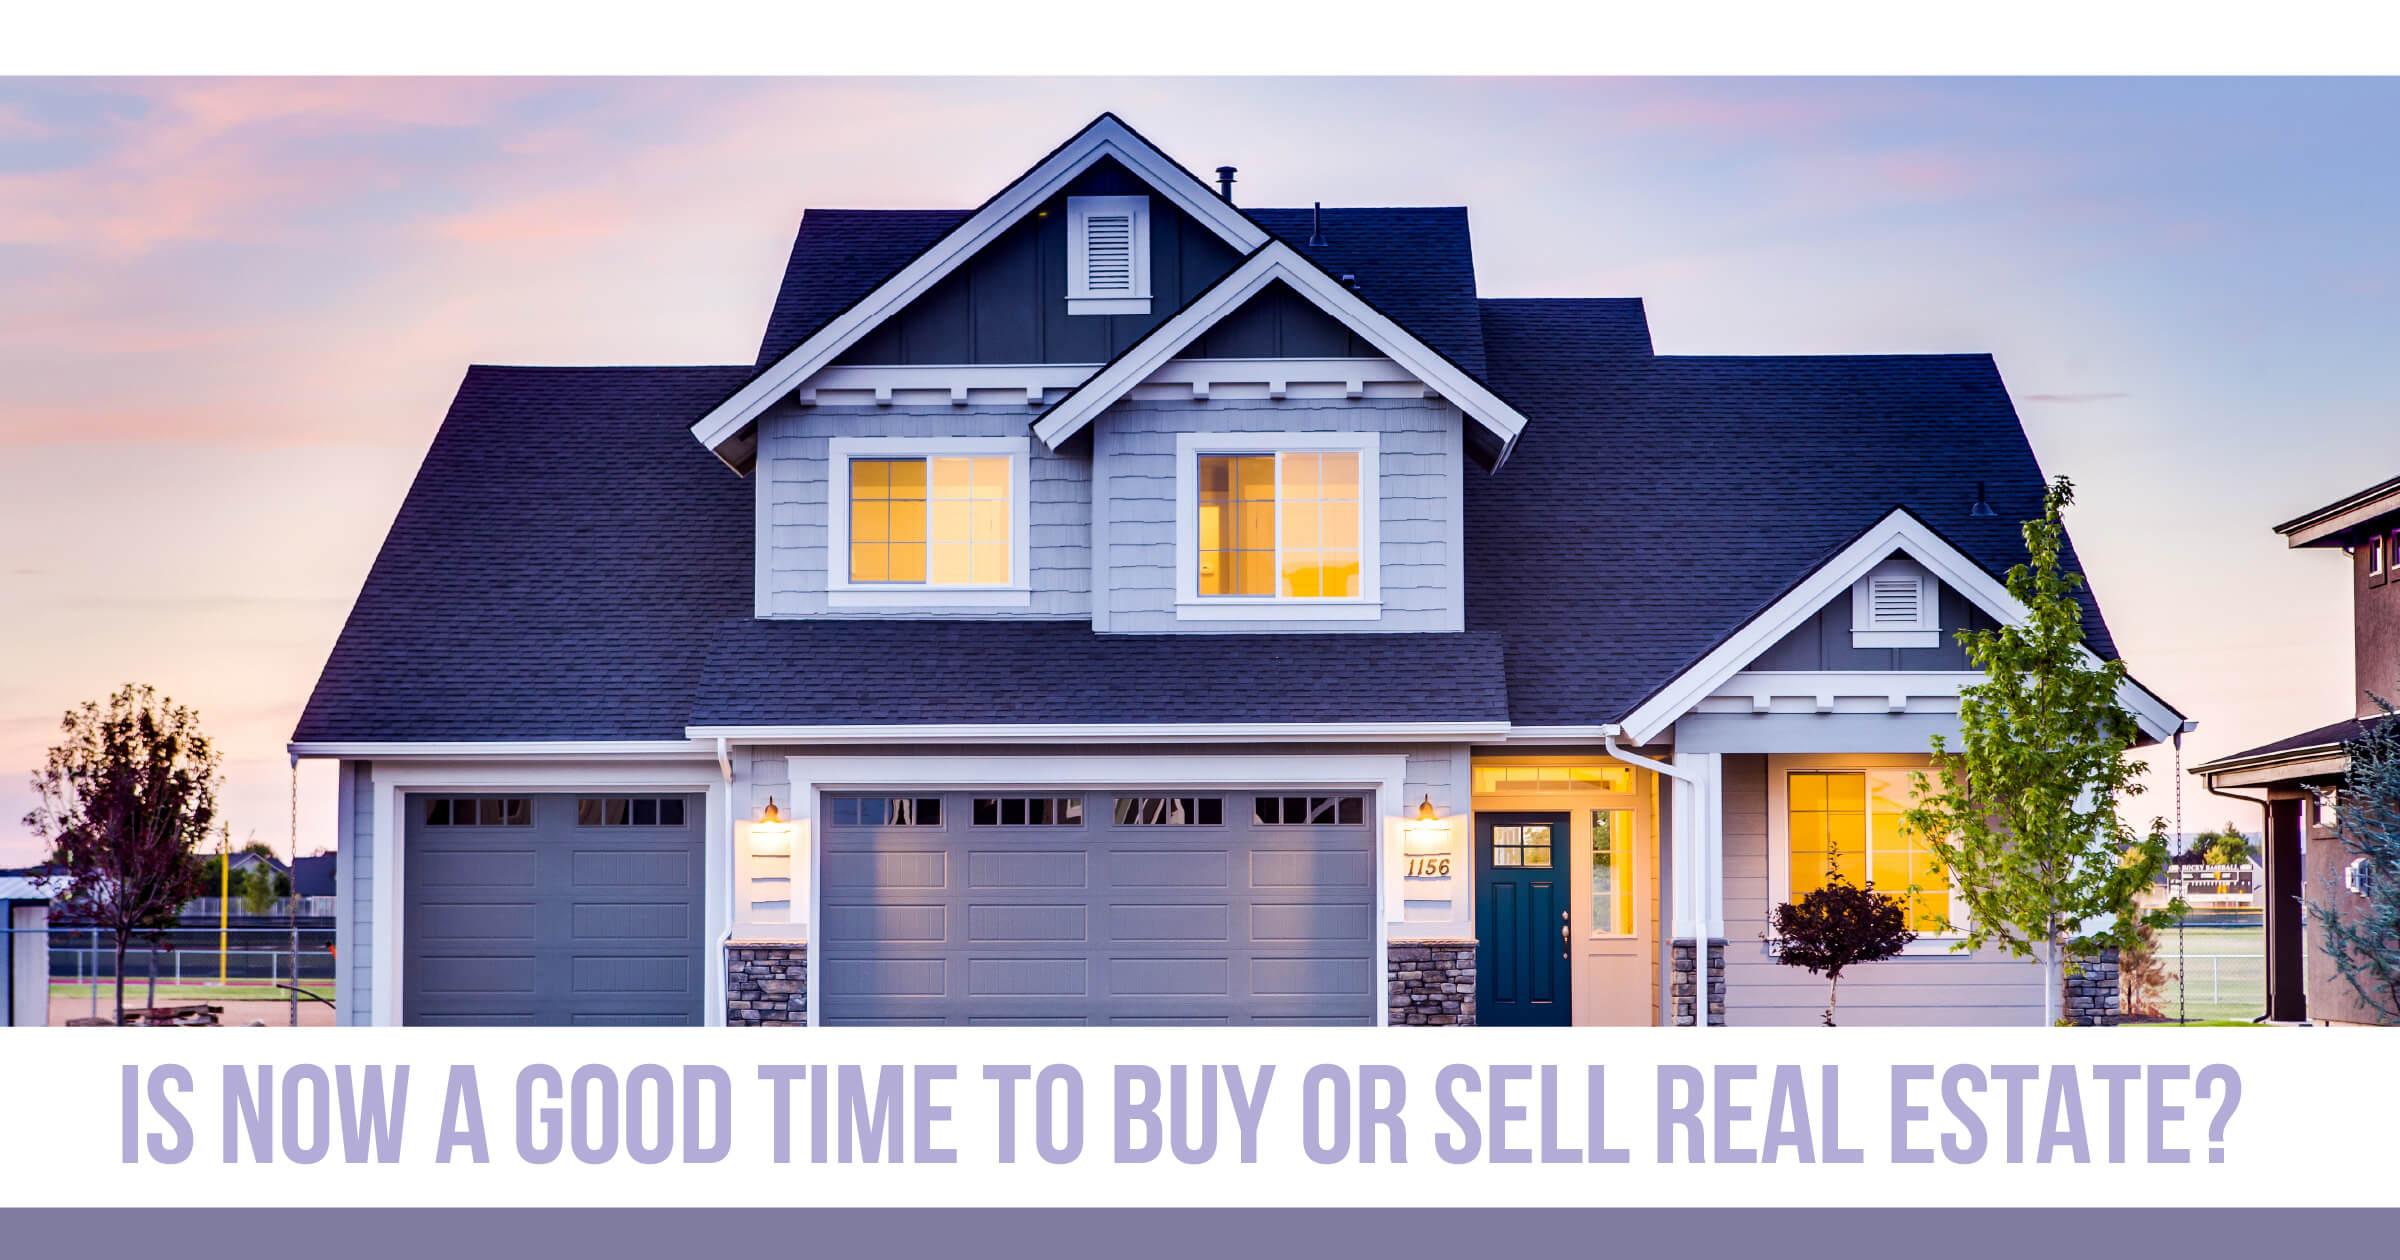 Is Now a Good Time to Buy or Sell Real Estate